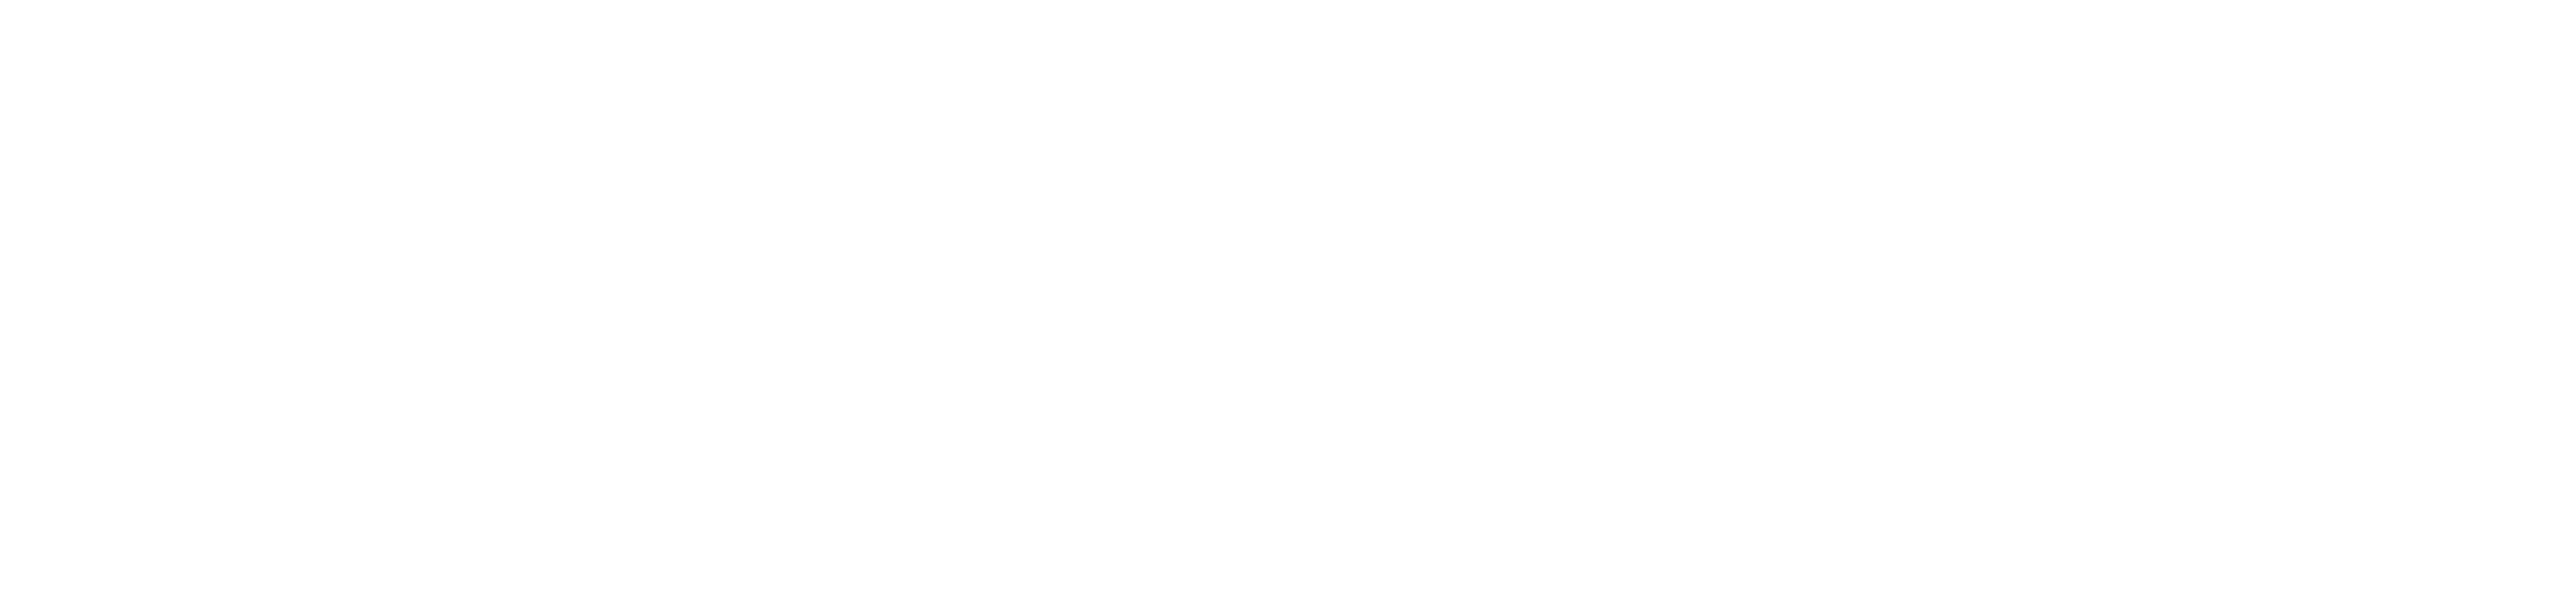 Wired Logo Png (108+ images in Collection) Page 2.